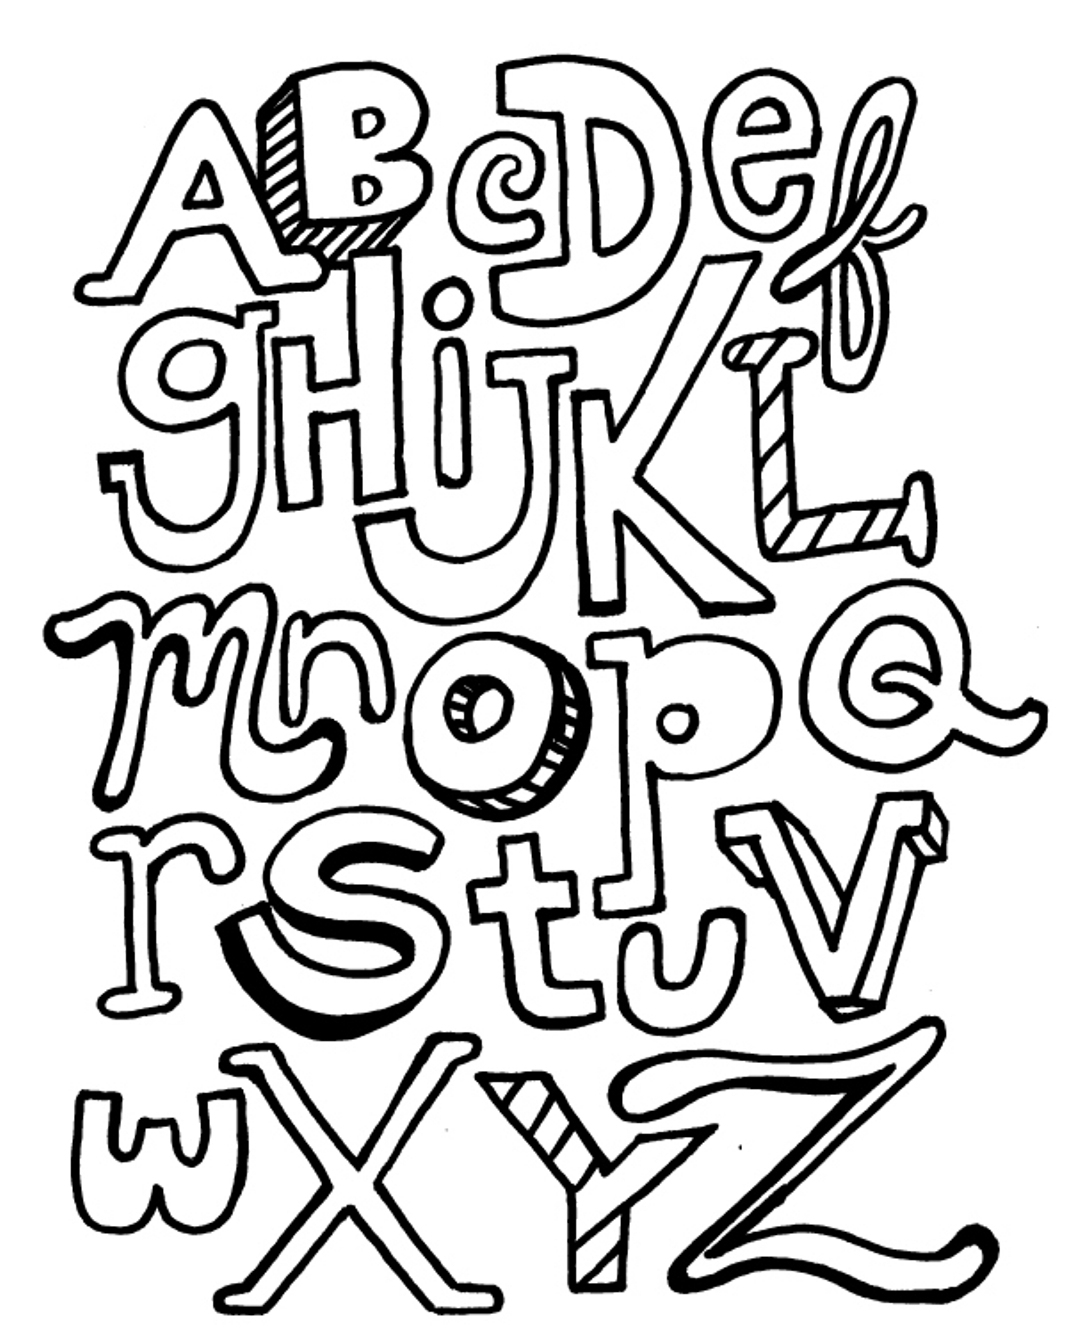 1089x1330 Awesome Alphabet Coloring Pages For Preschool